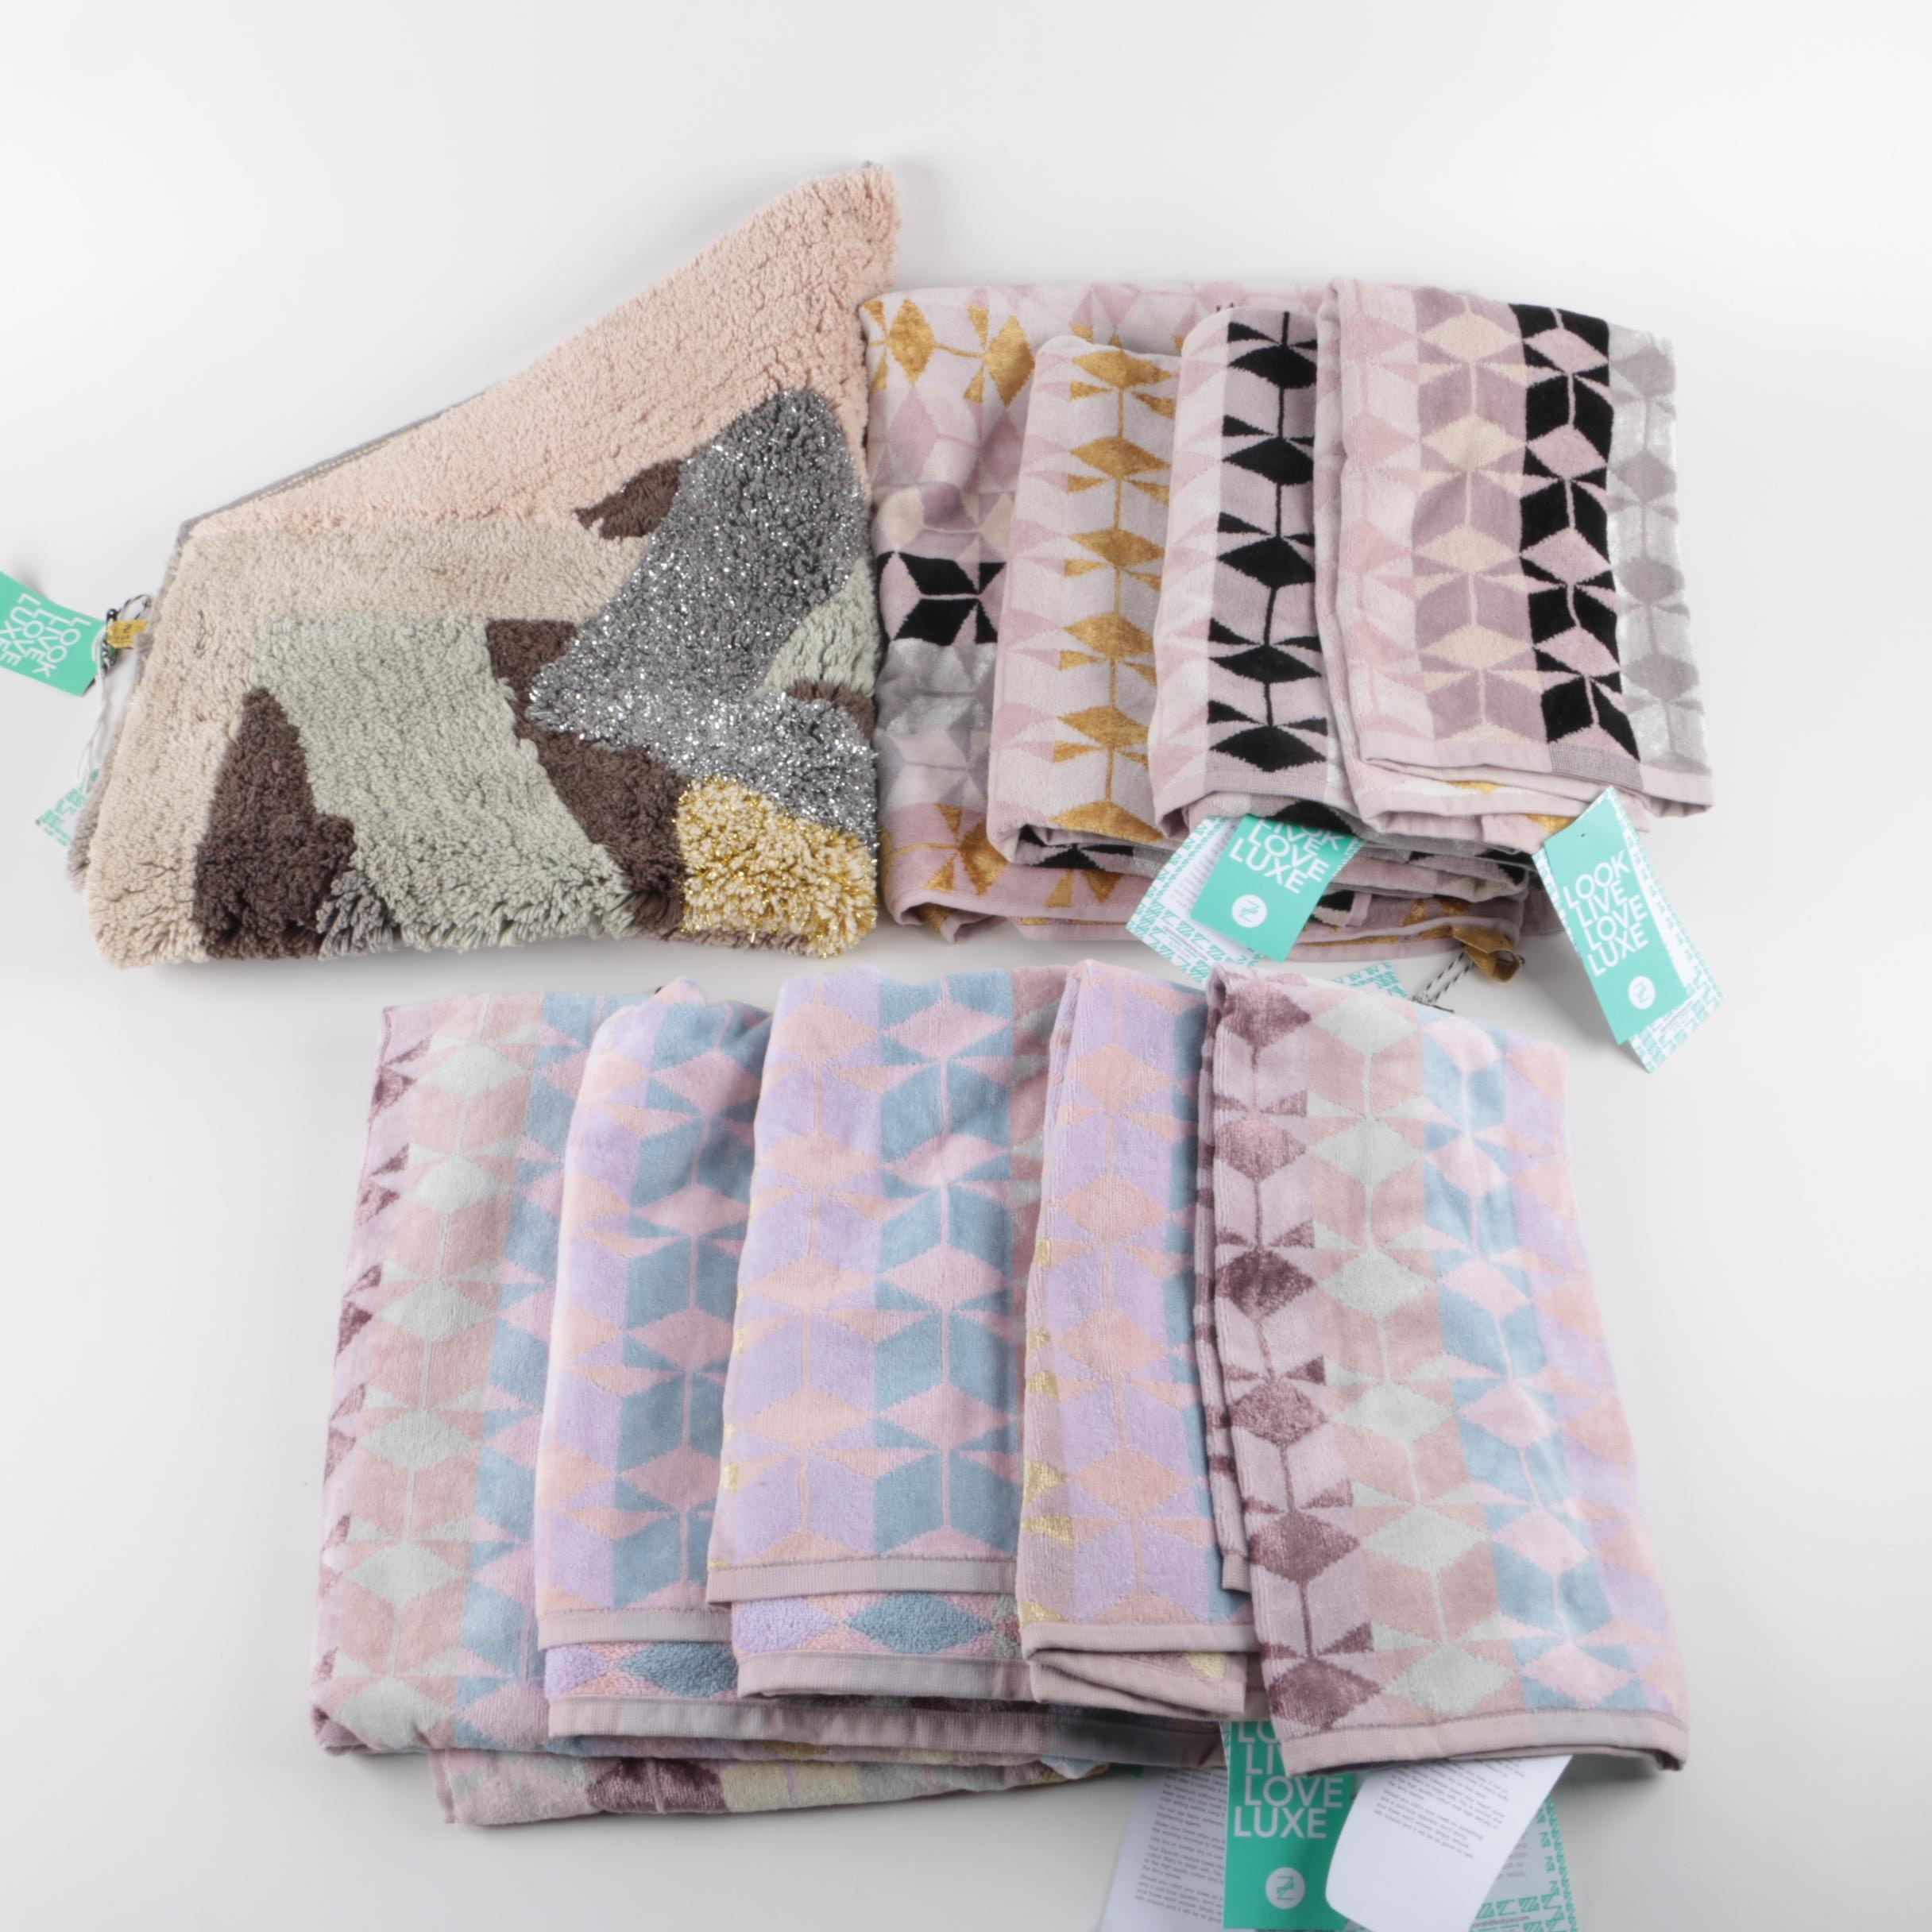 Bath Towels and Rug Featuring Ziporah Lifestyle